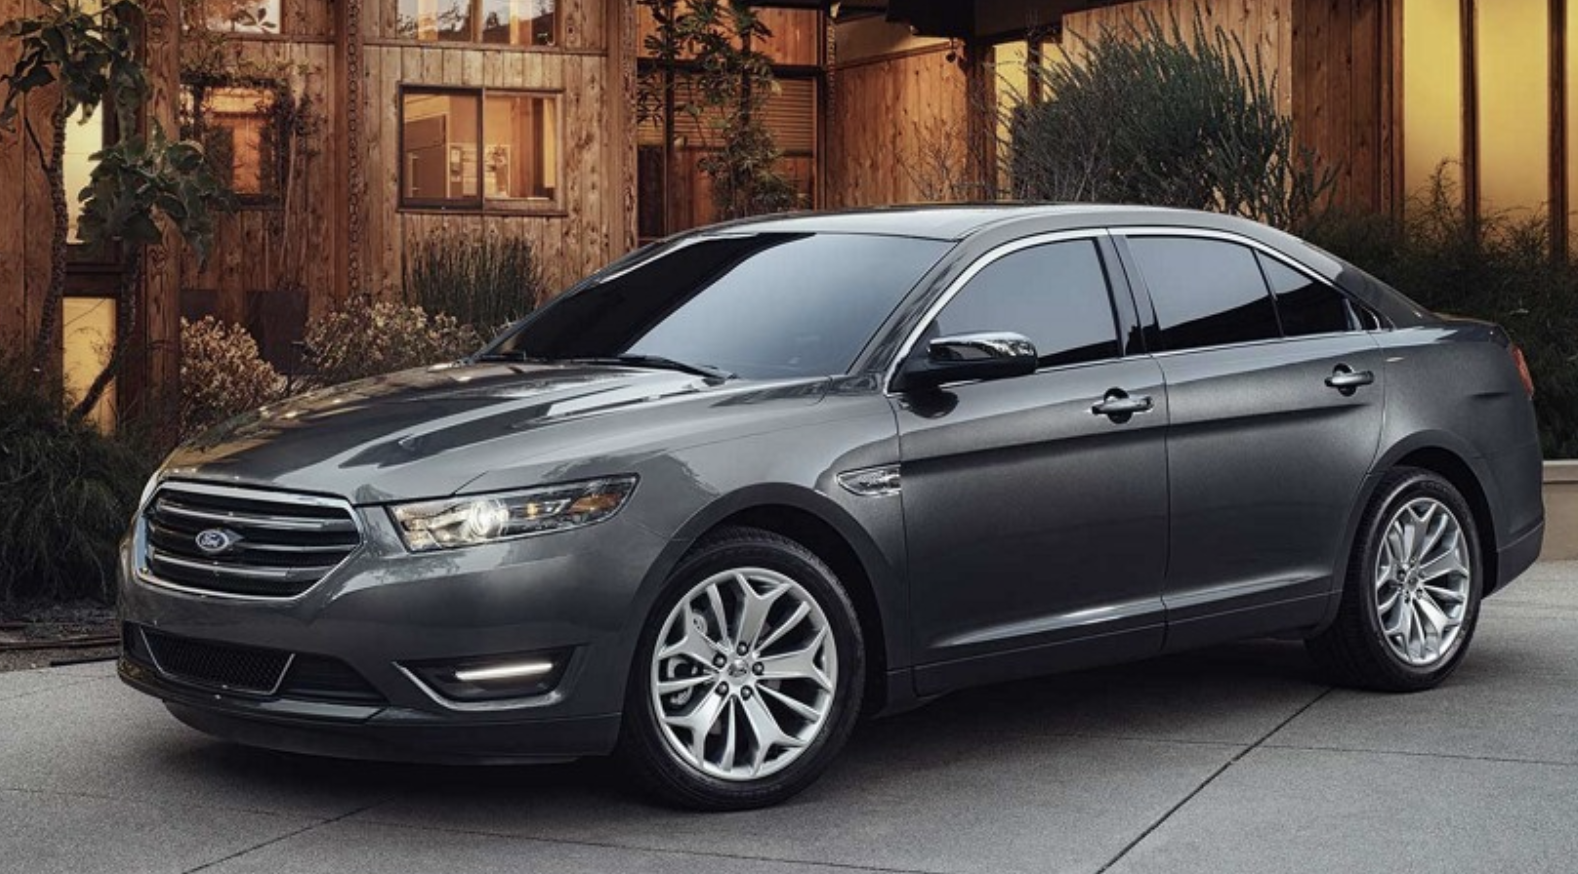 2021 Ford Taurus Engine Expert Review Of The 2021 Ford Taurus Engine Provides The Latest Look At Trim Level Features And Specs Performance In 2020 Taurus Car 2019 Ford